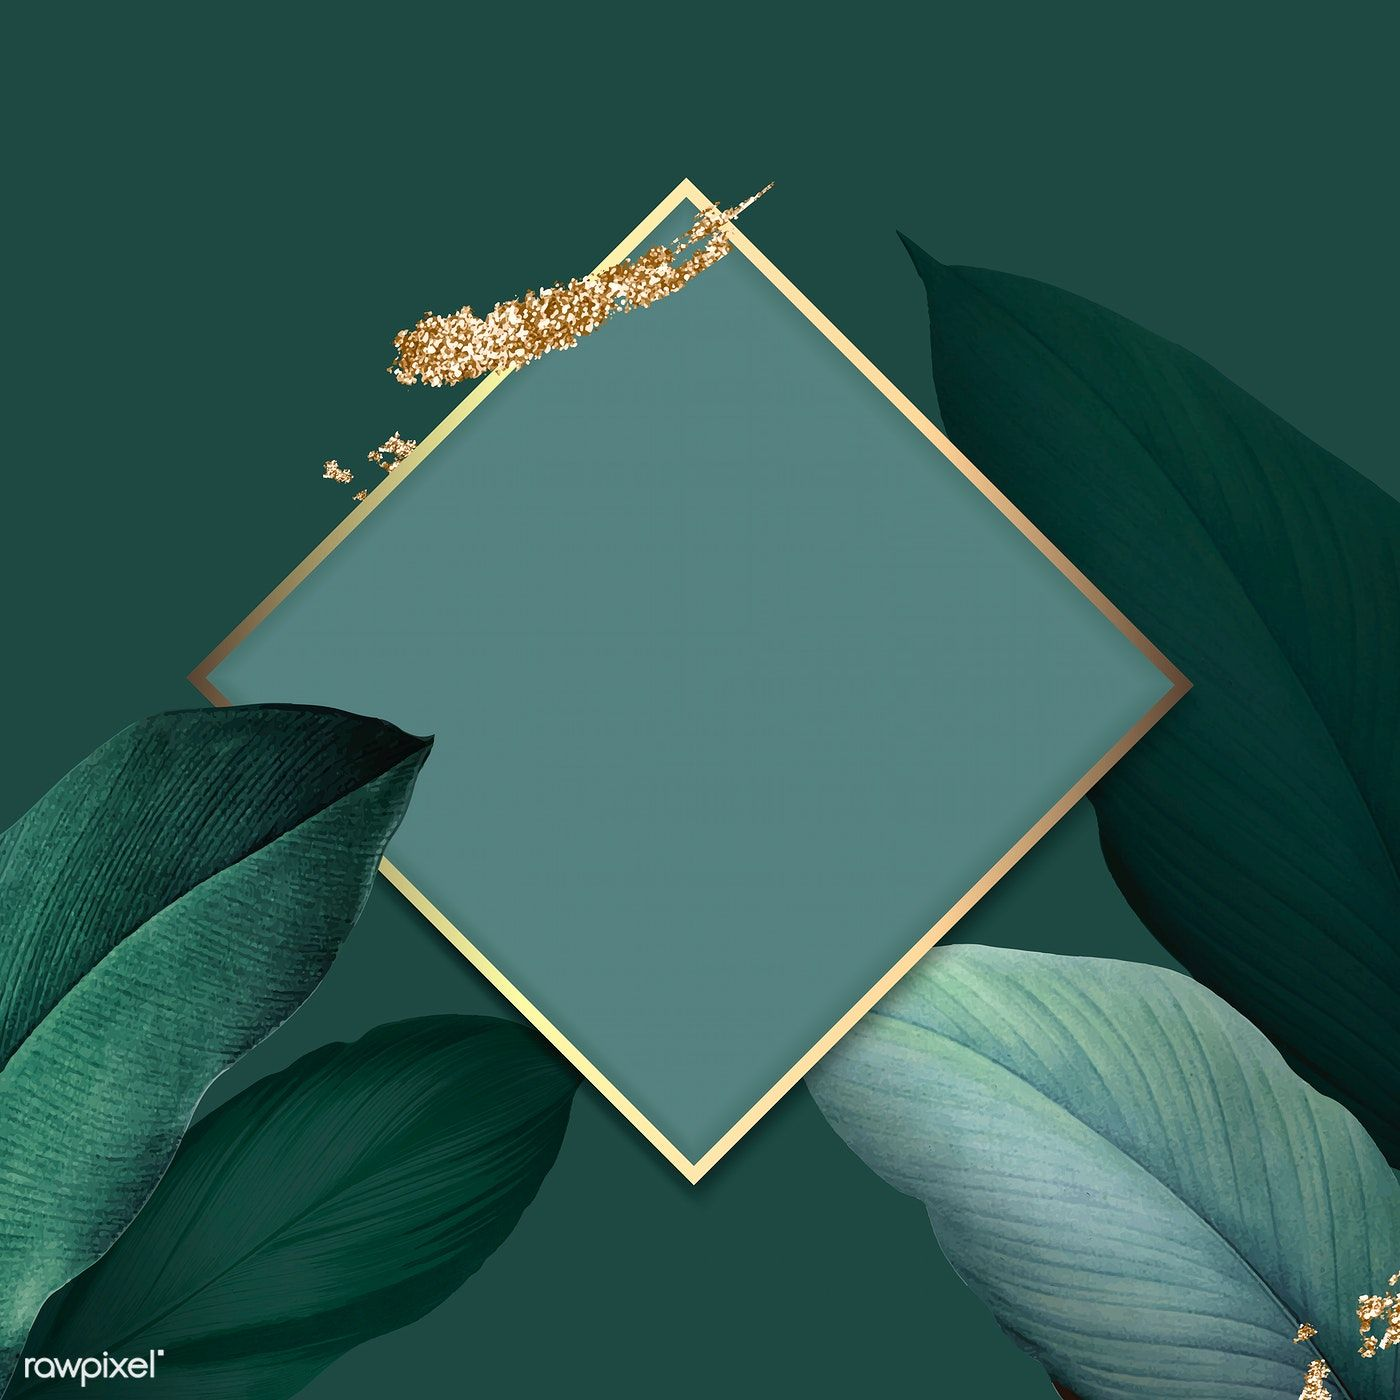 Download premium vector of Rhombus foliage frame on green